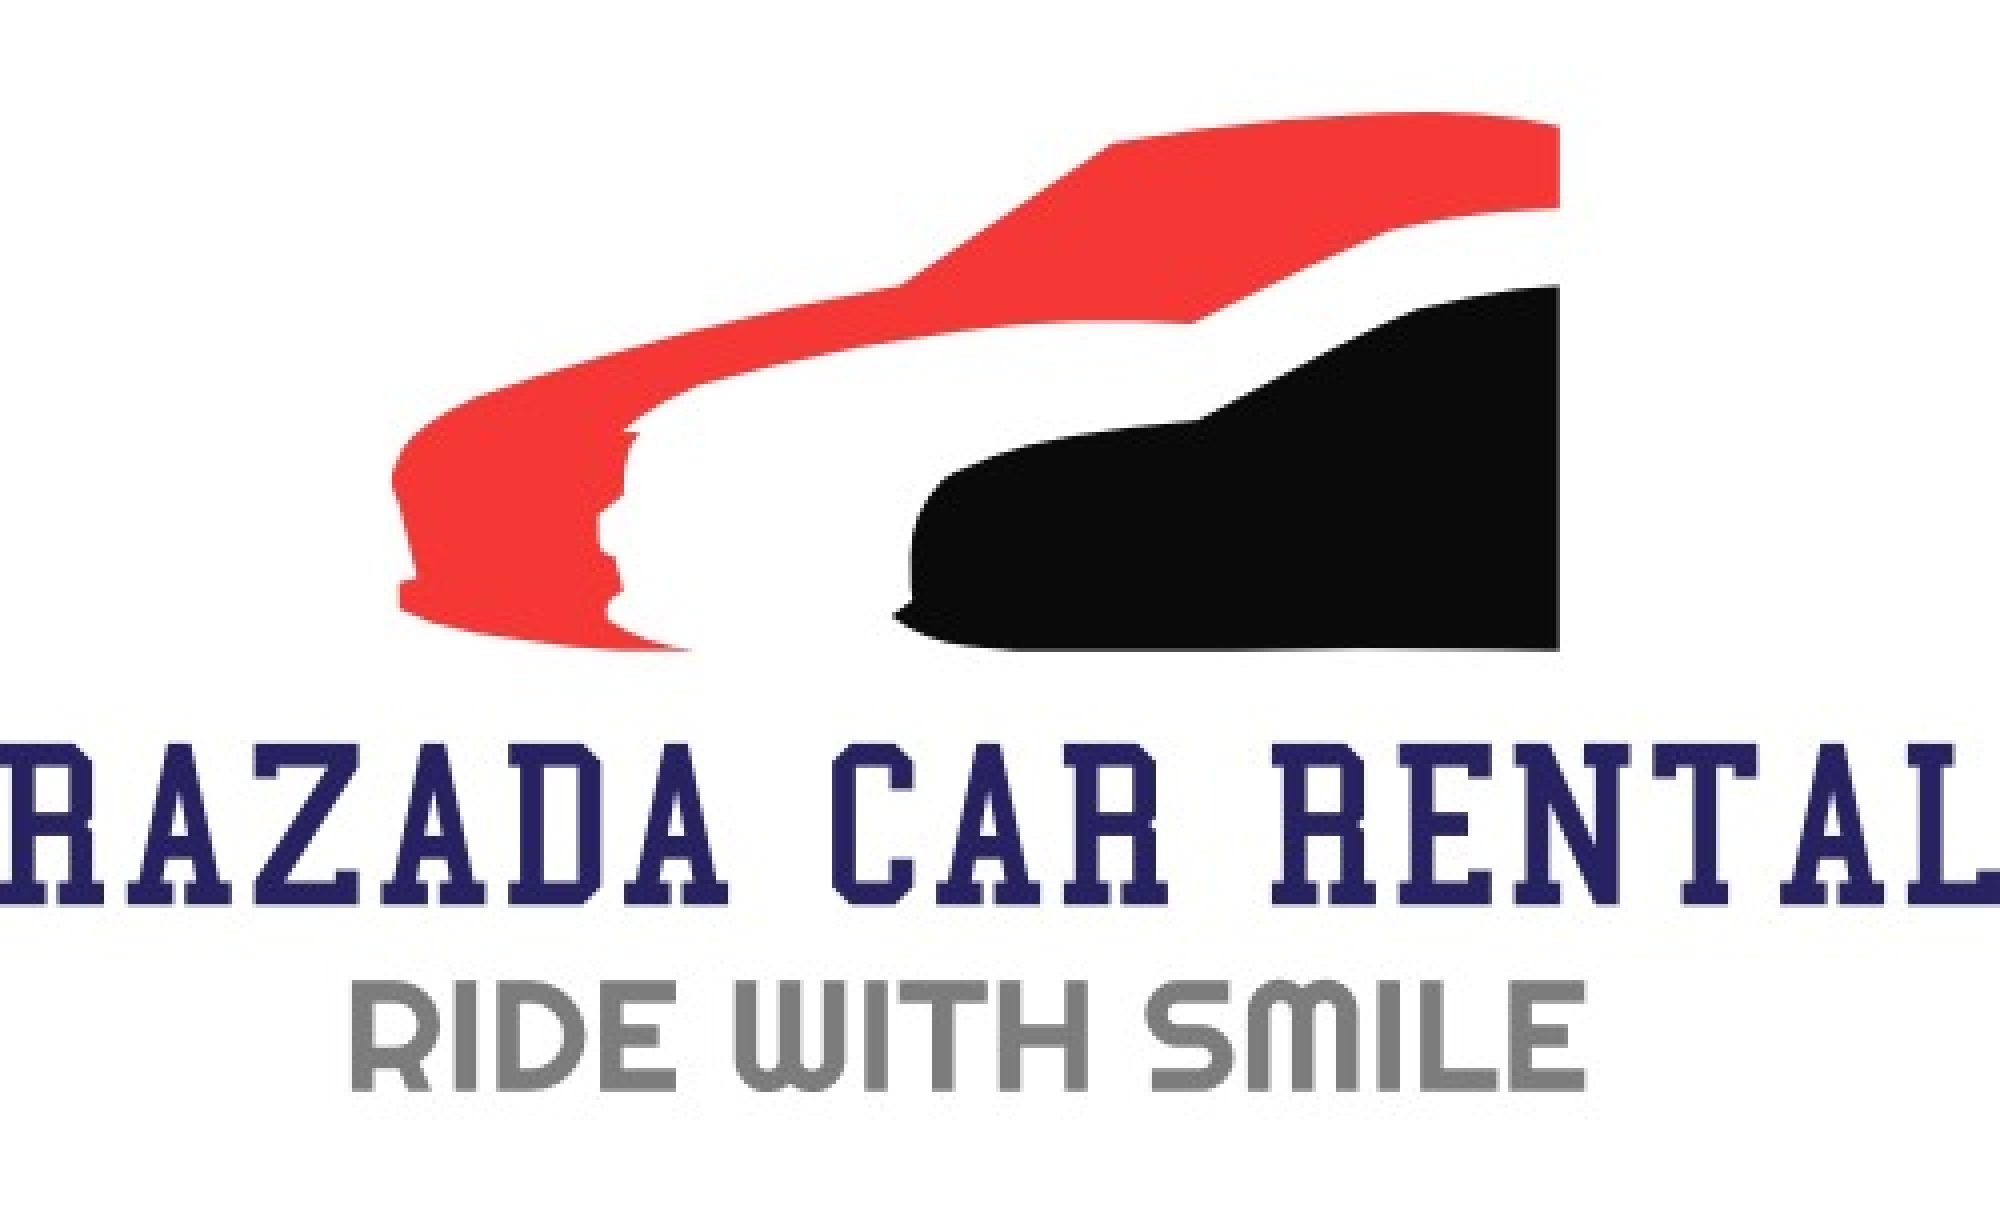 RAZADA Butterworth Car Rental